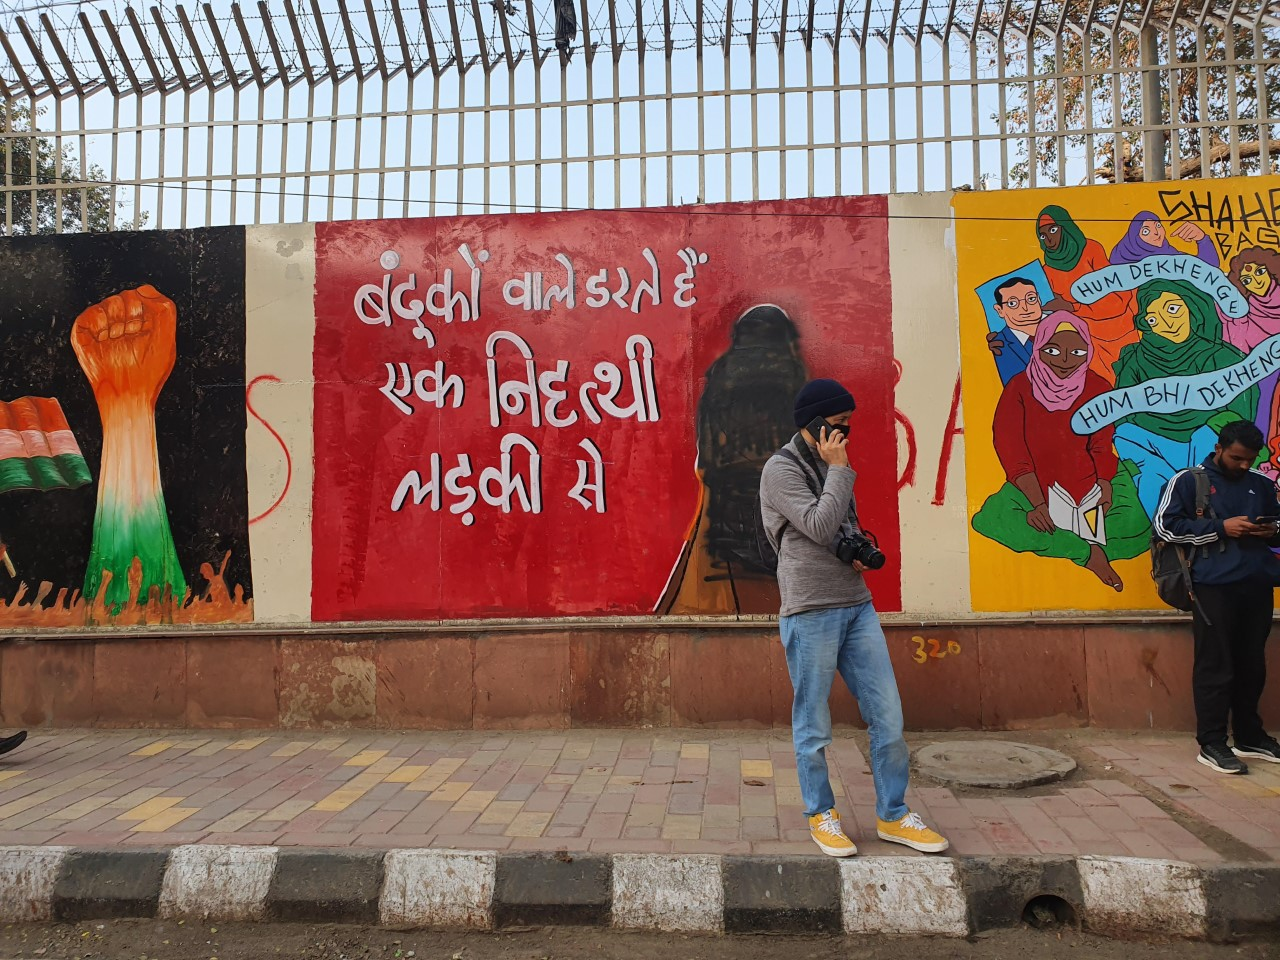 Murals created by protestors against the Citizenship Amendment Act (2019) in Shaheen Bagh, New Delhi, India. January 2020.